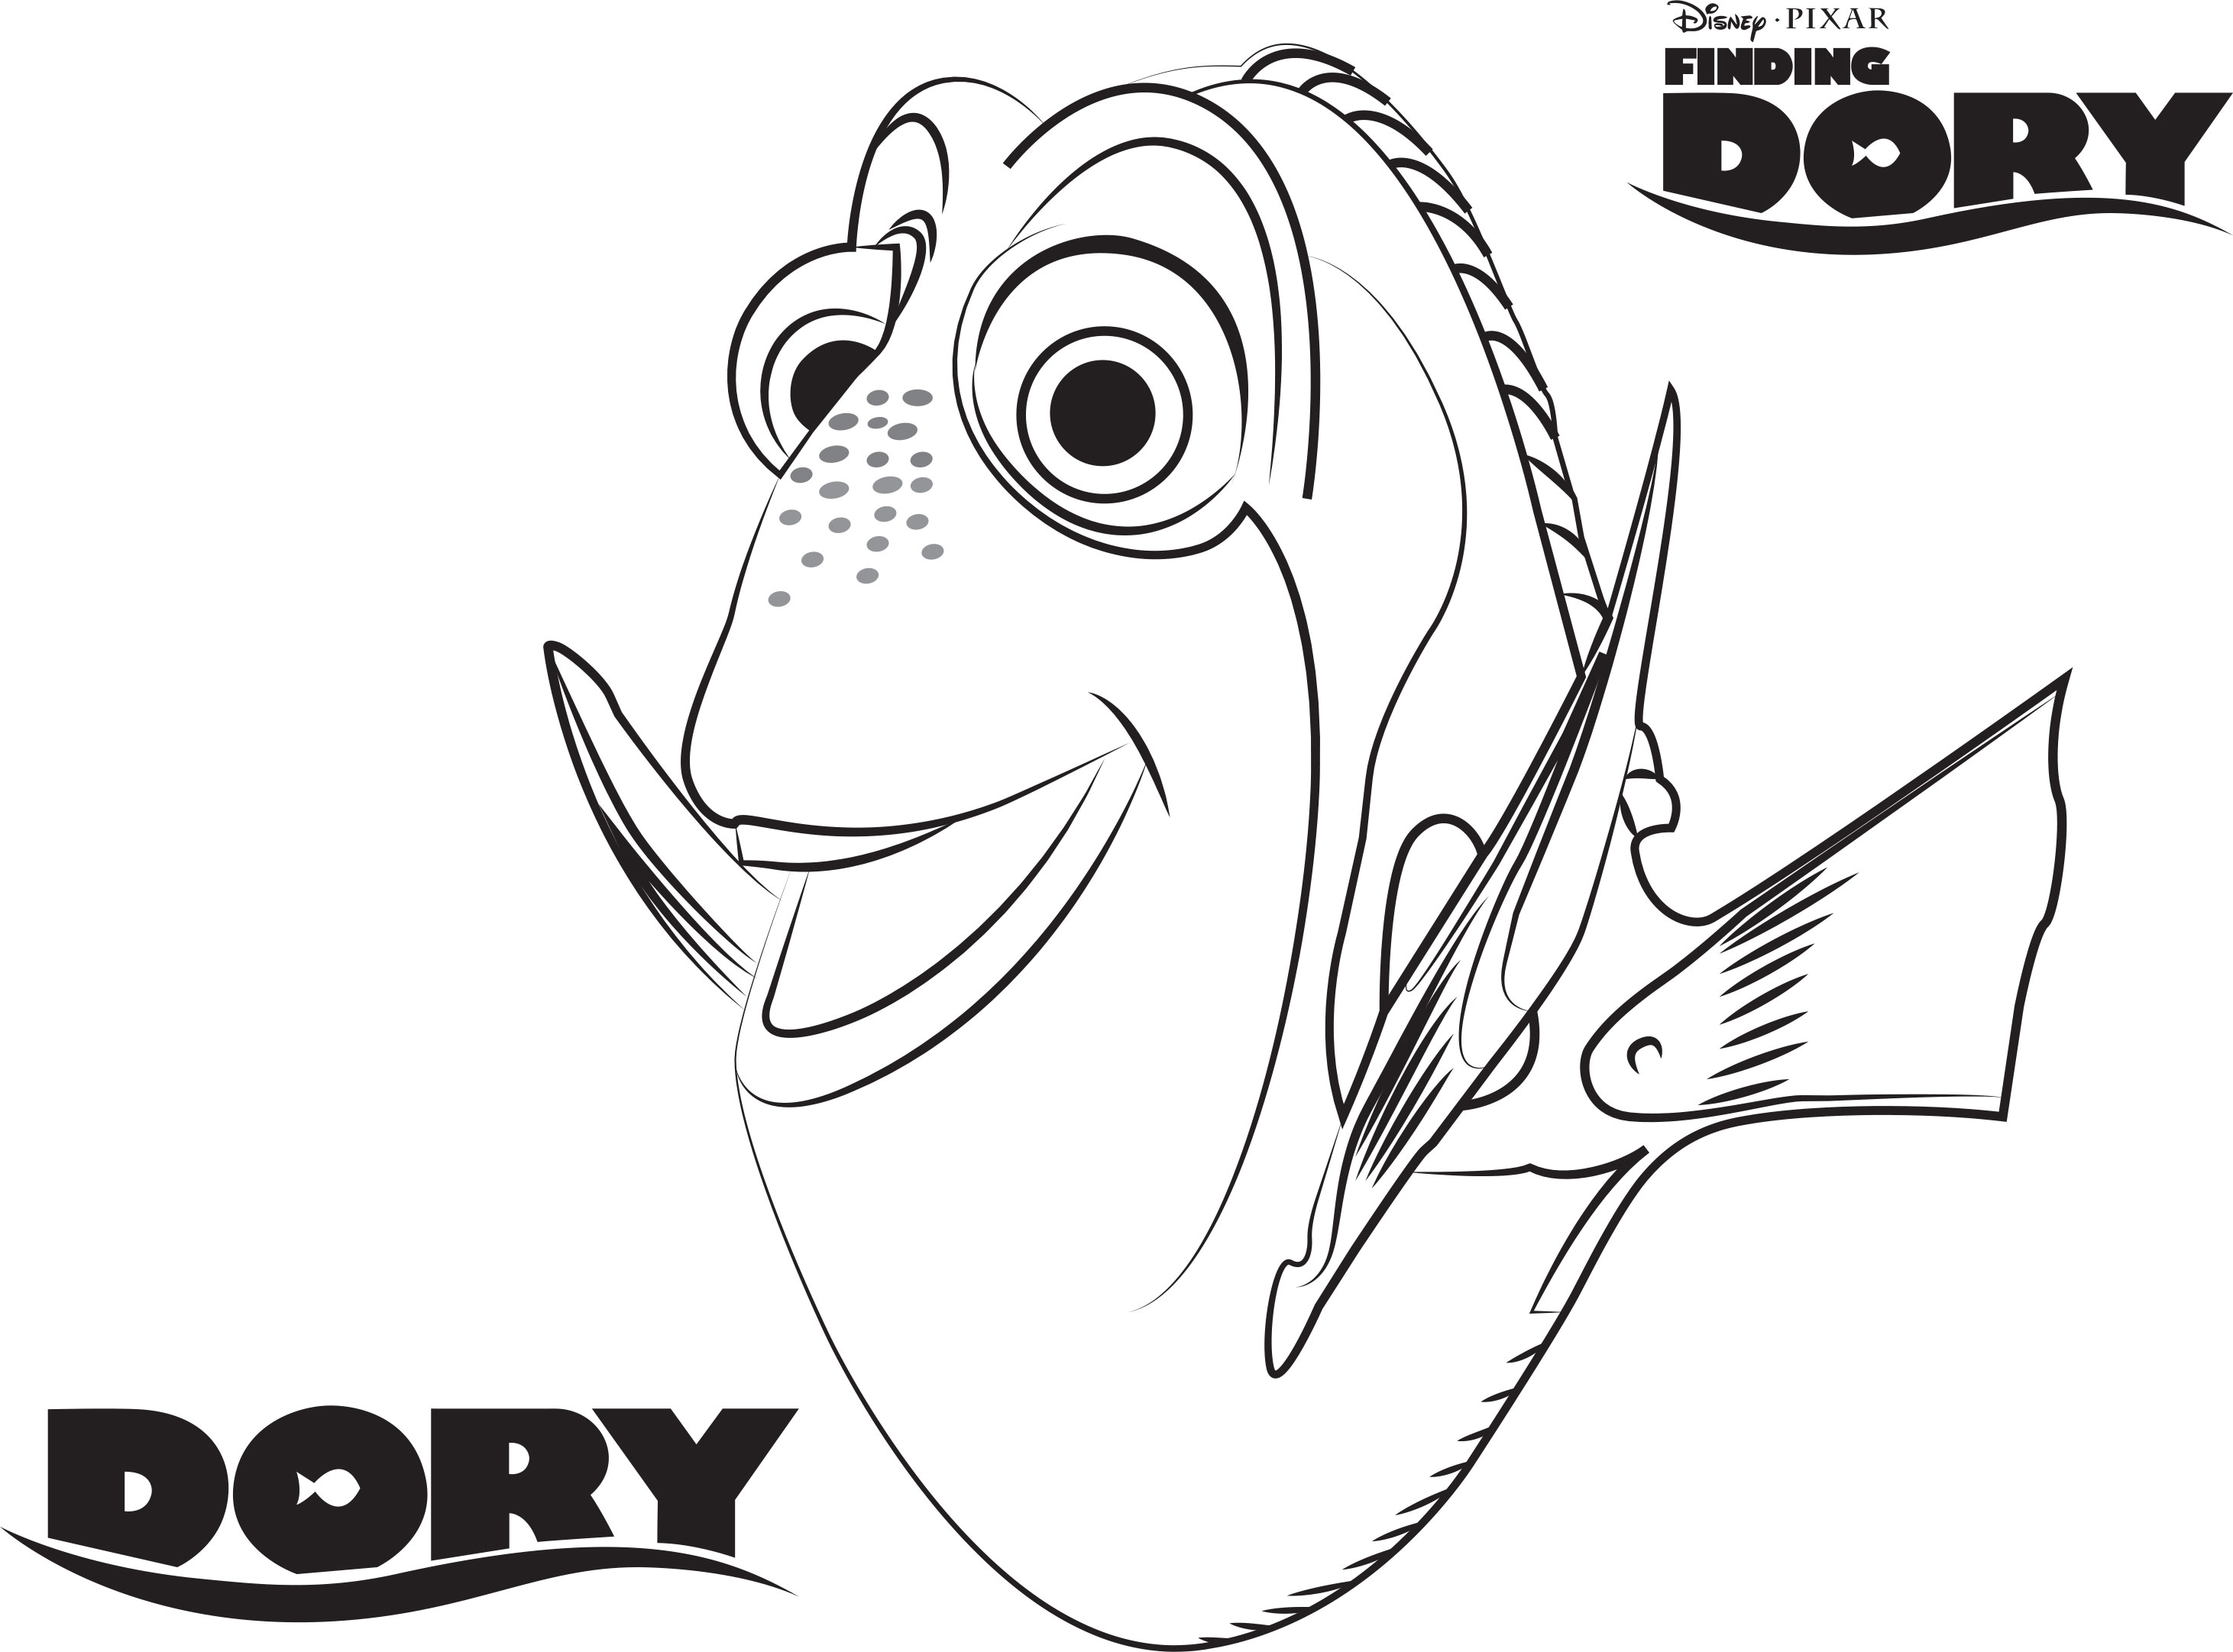 Nemo Y Dory Para Colorear: Best Coloring Pages For Kids